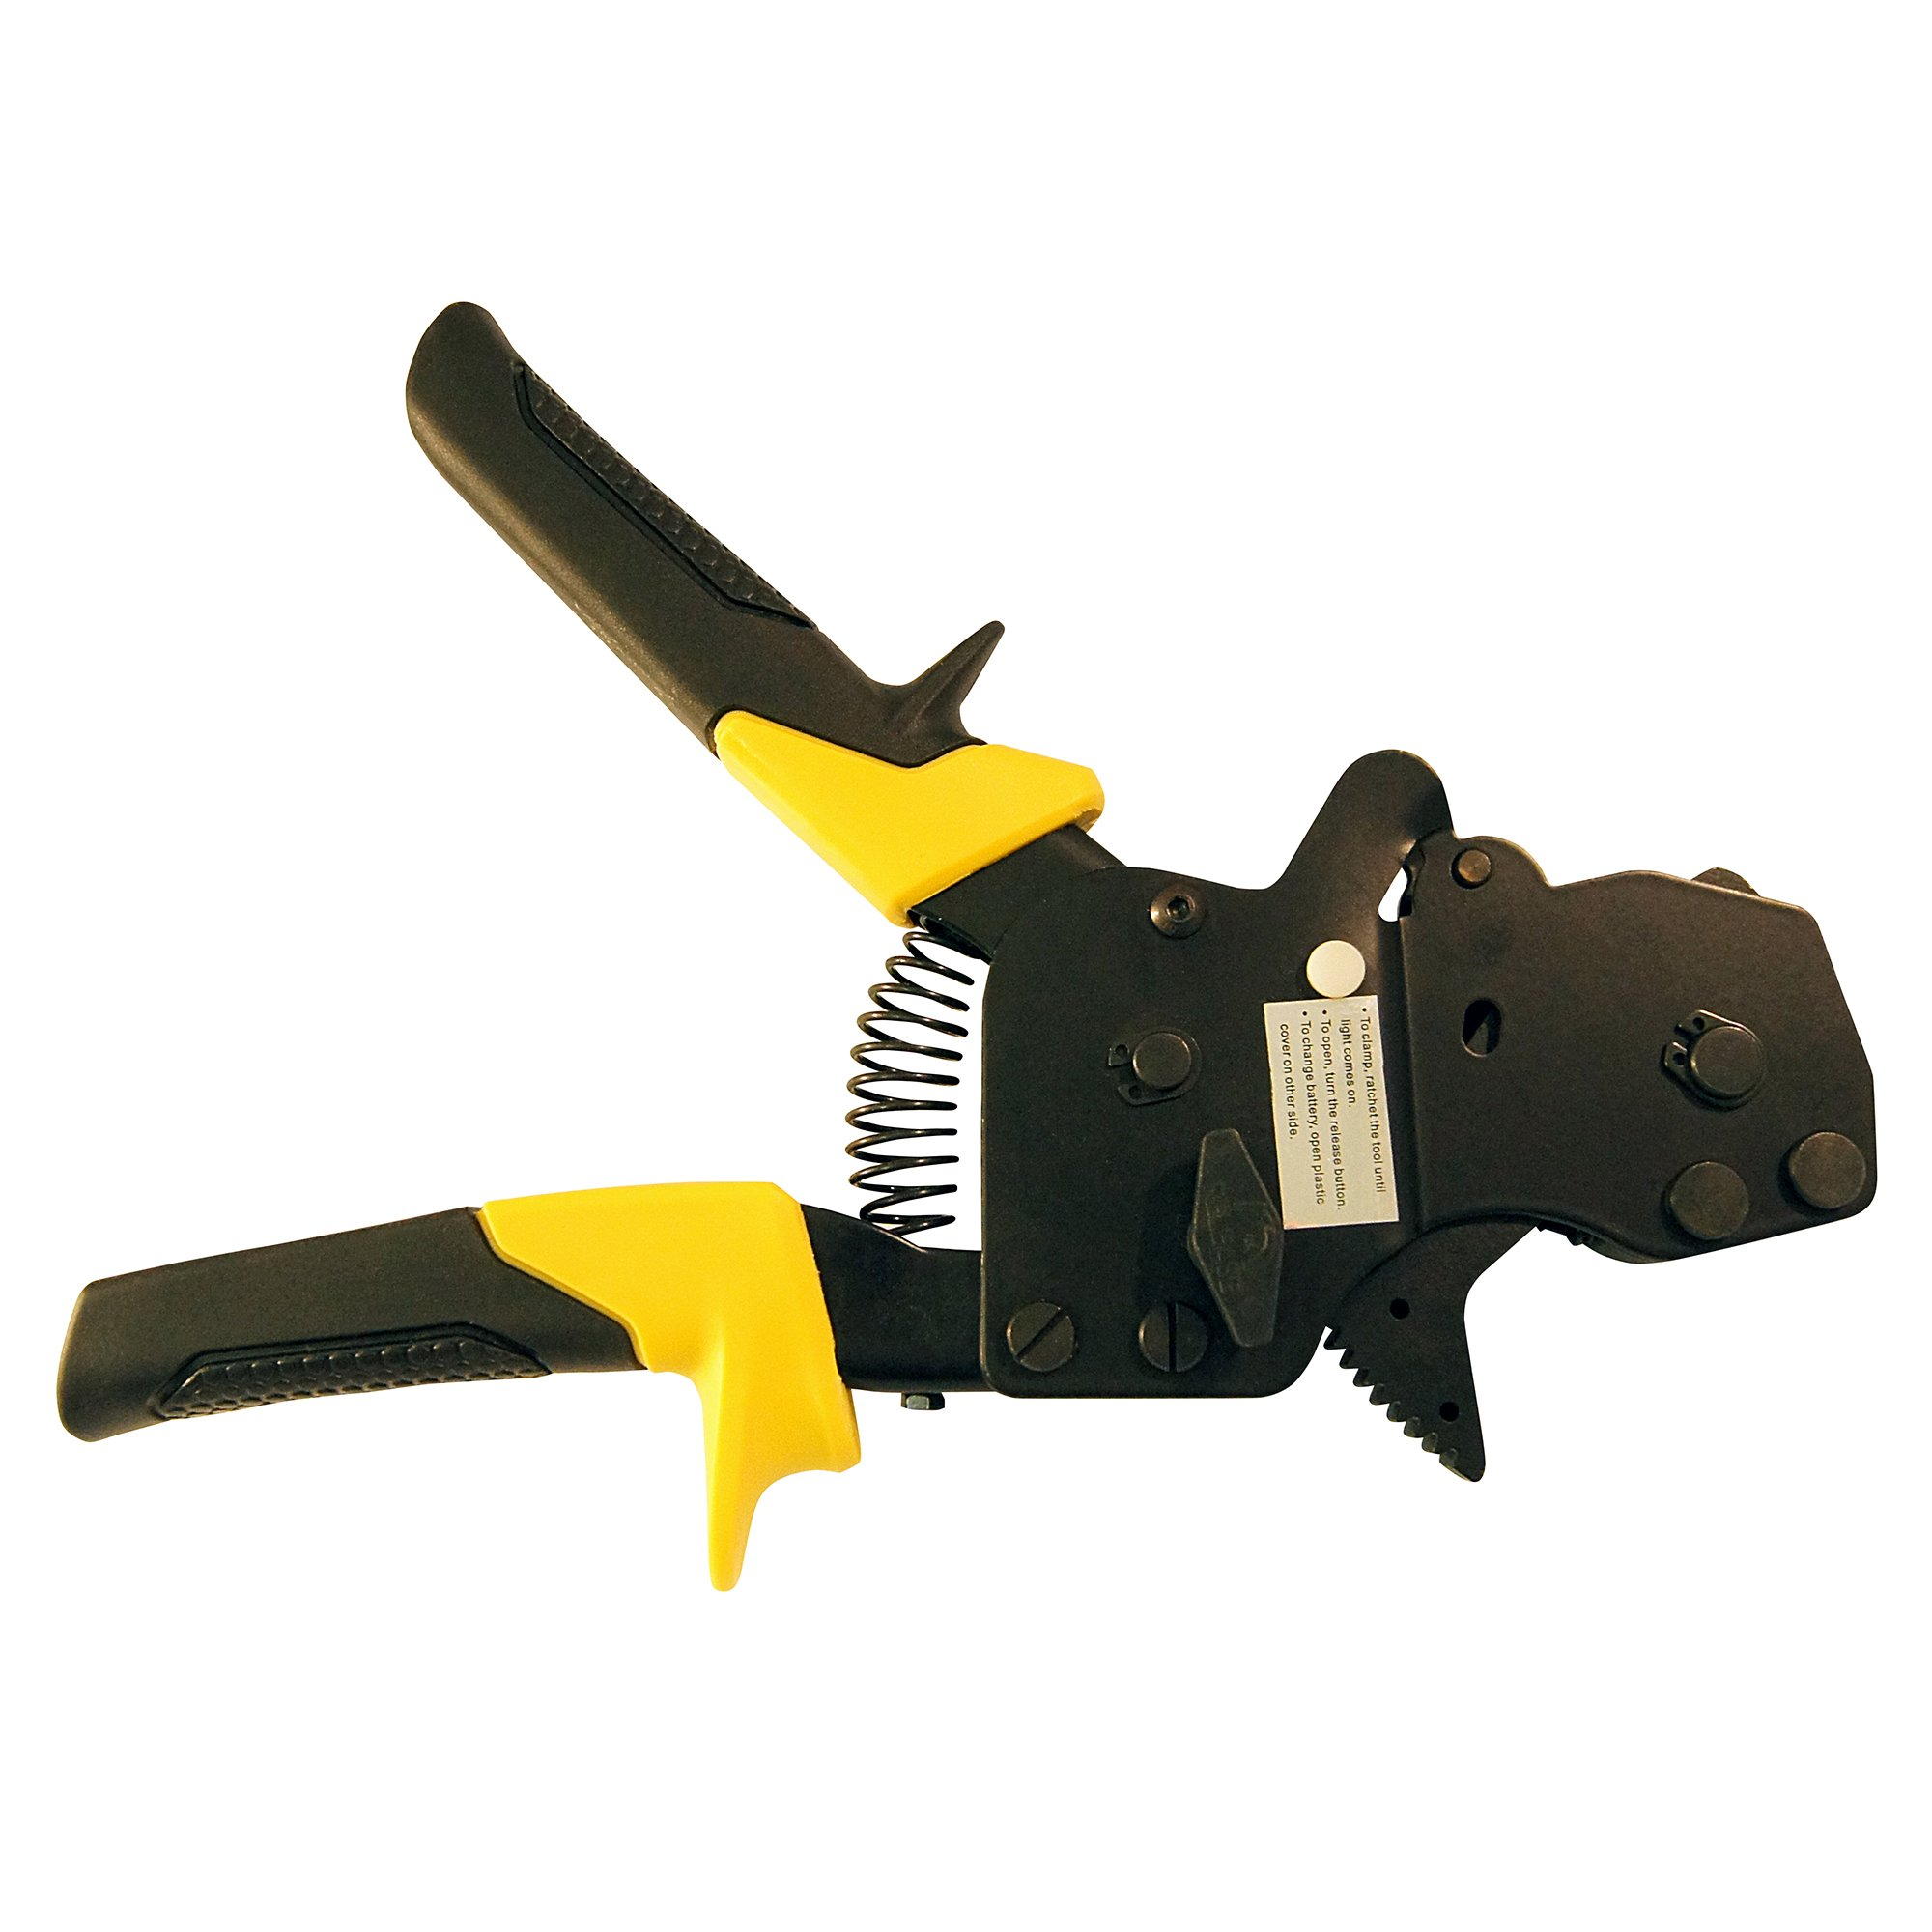 Apollo PEX 69PTBJ0010C 3/8-inch - 1-inch One Hand Cinch Clamp Tool